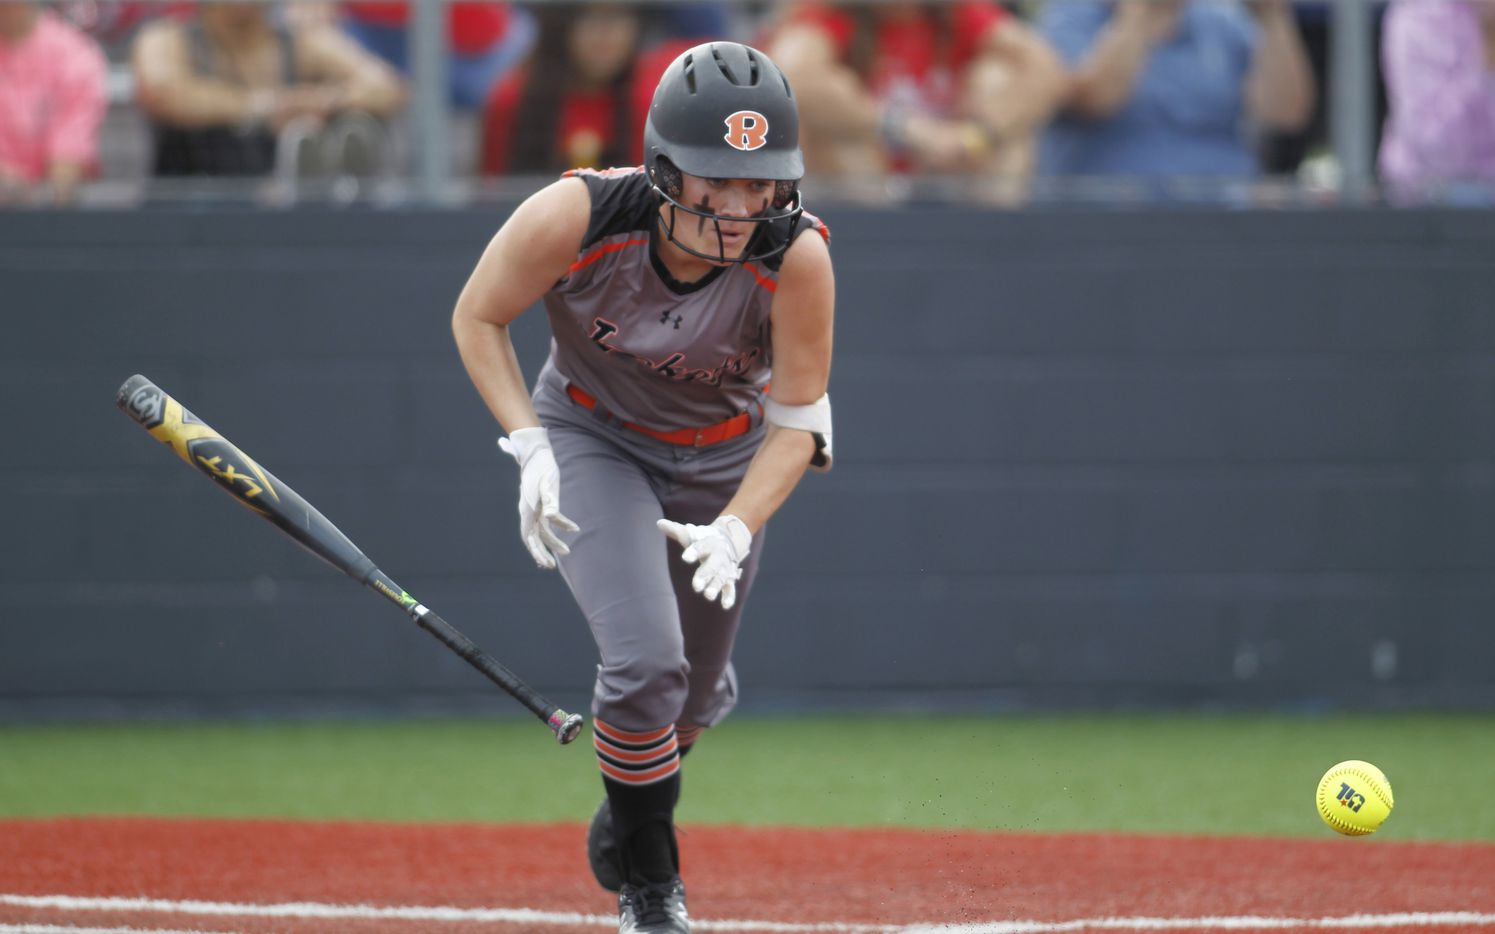 Rockwall's Logan Nies (6) hustles to first base after laying down a bunt during the top of the 4th inning against Converse Judson.The two teams played their UIL 6A state softball semifinal game at Leander Glenn High School in Leander on June 4, 2021. (Steve Hamm/ Special Contributor)